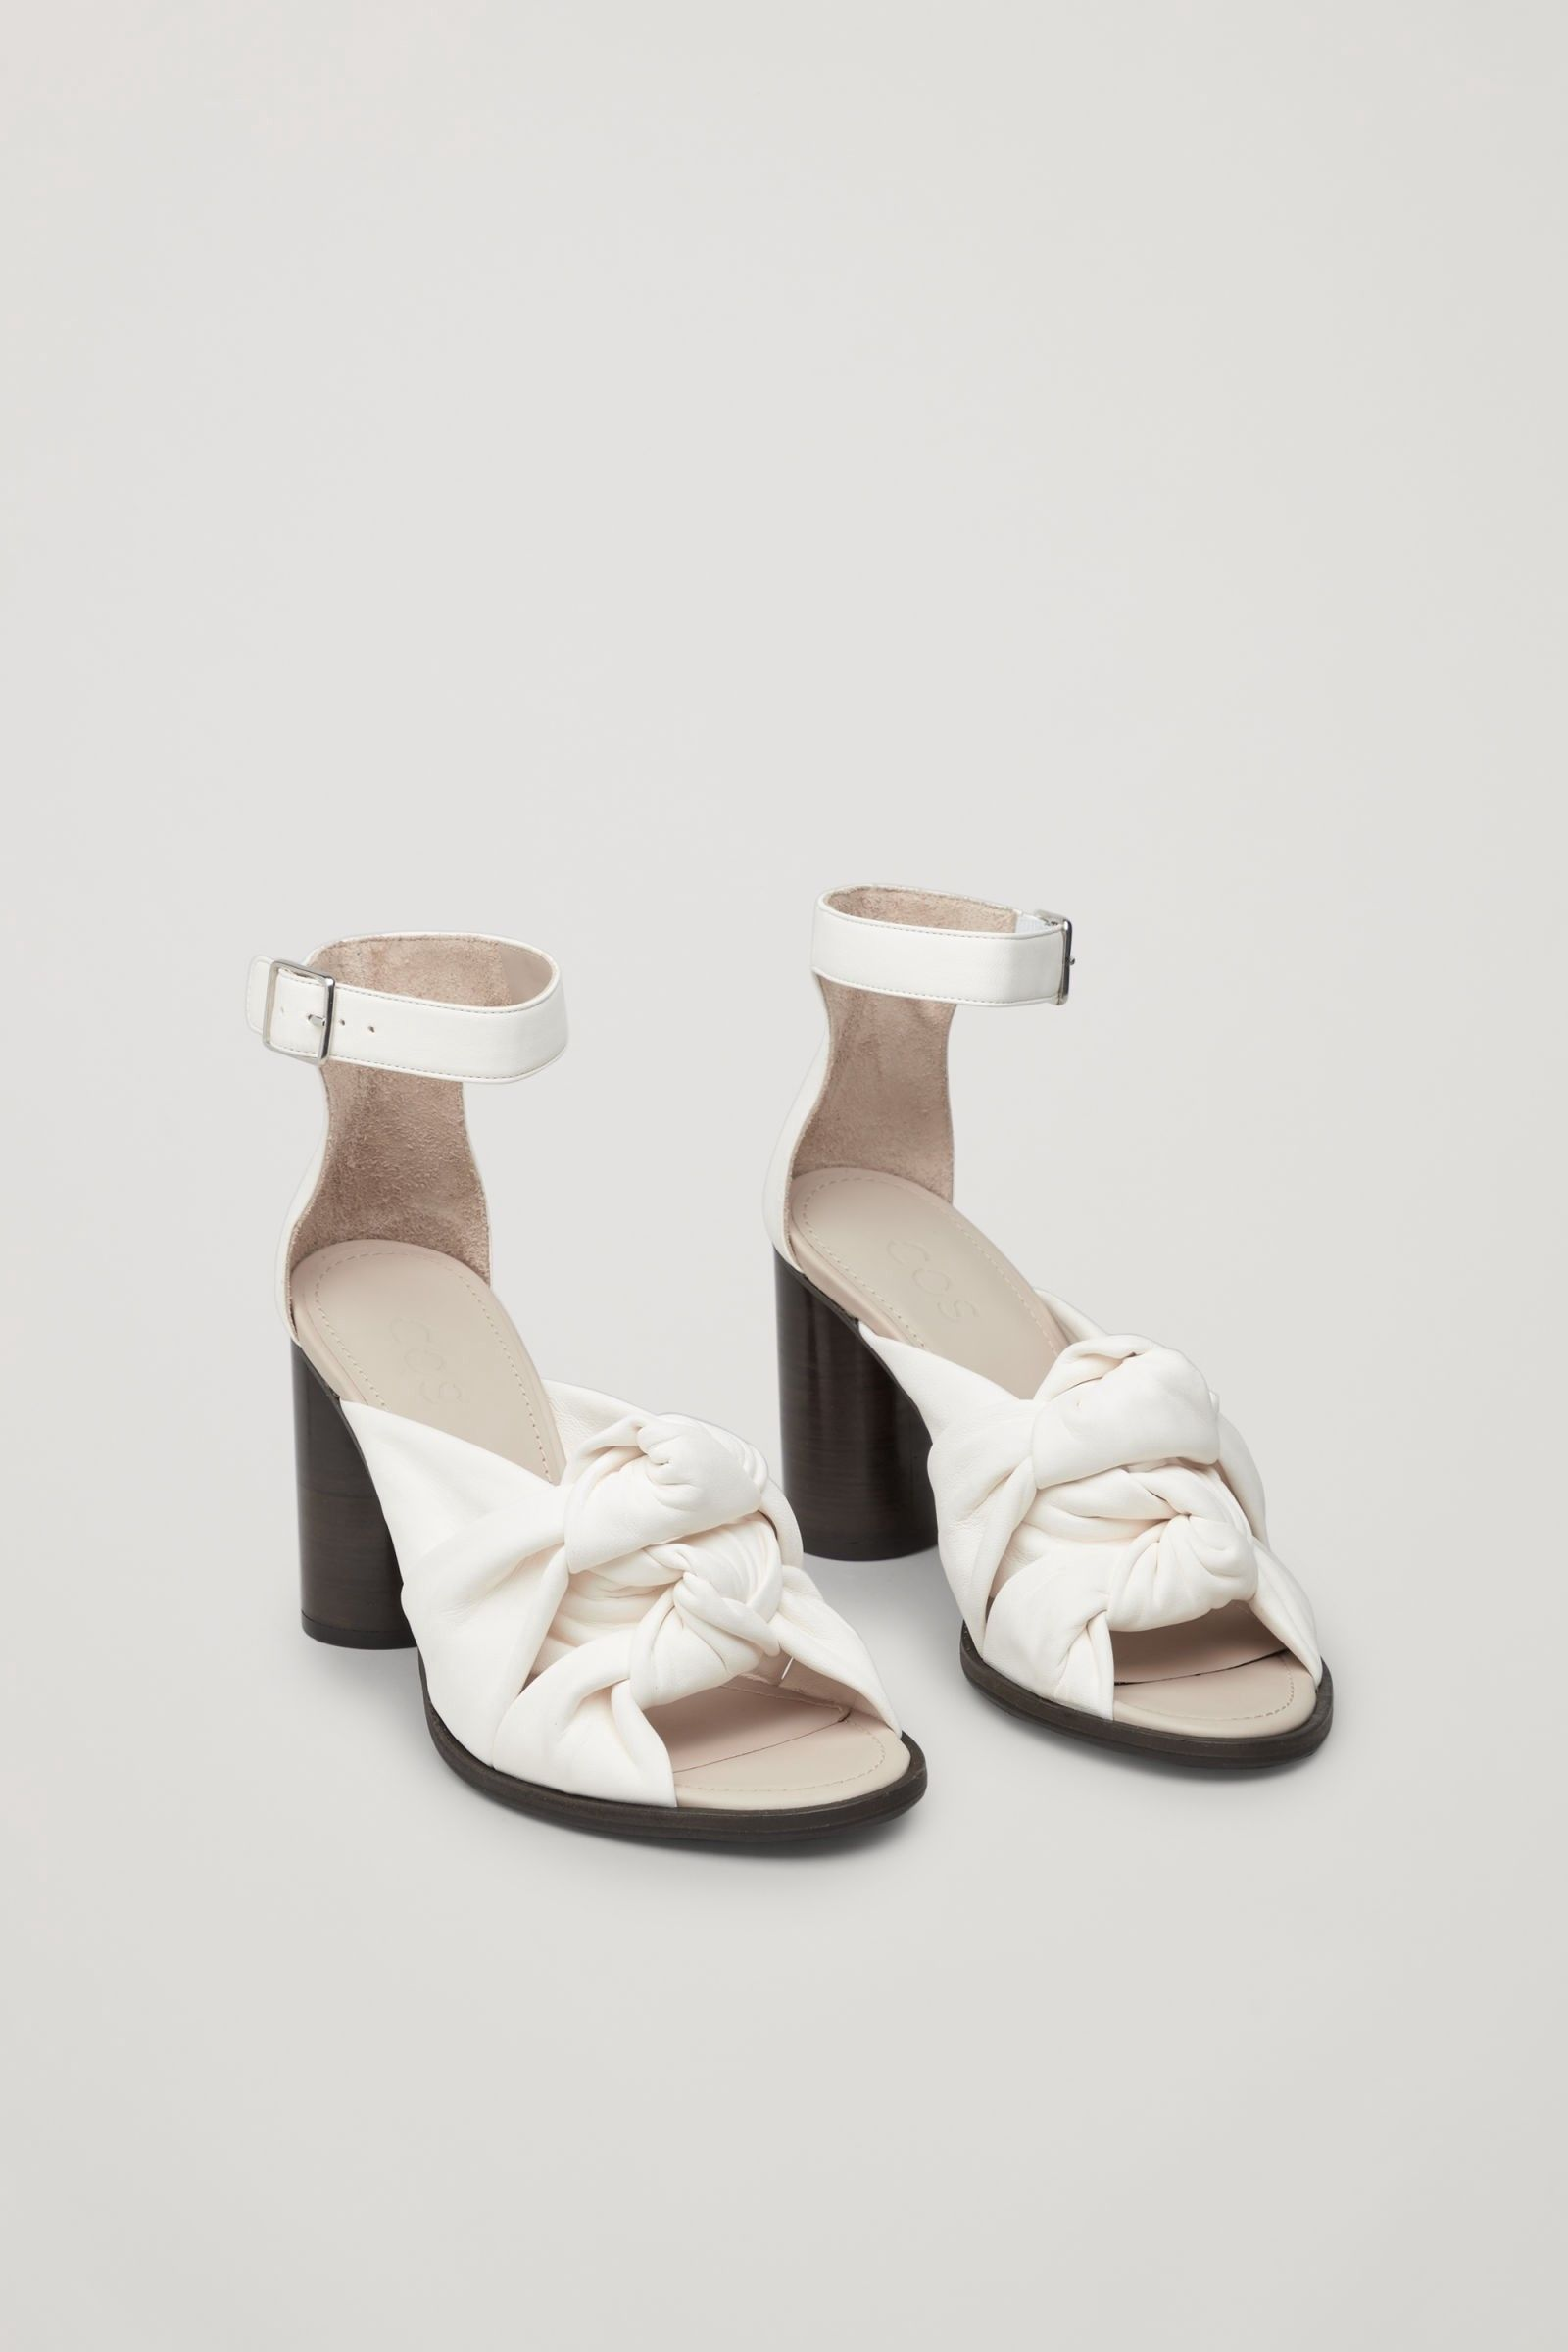 21510b73c5bba Cos Knot-Front Leather Sandals - Ivory 8.5